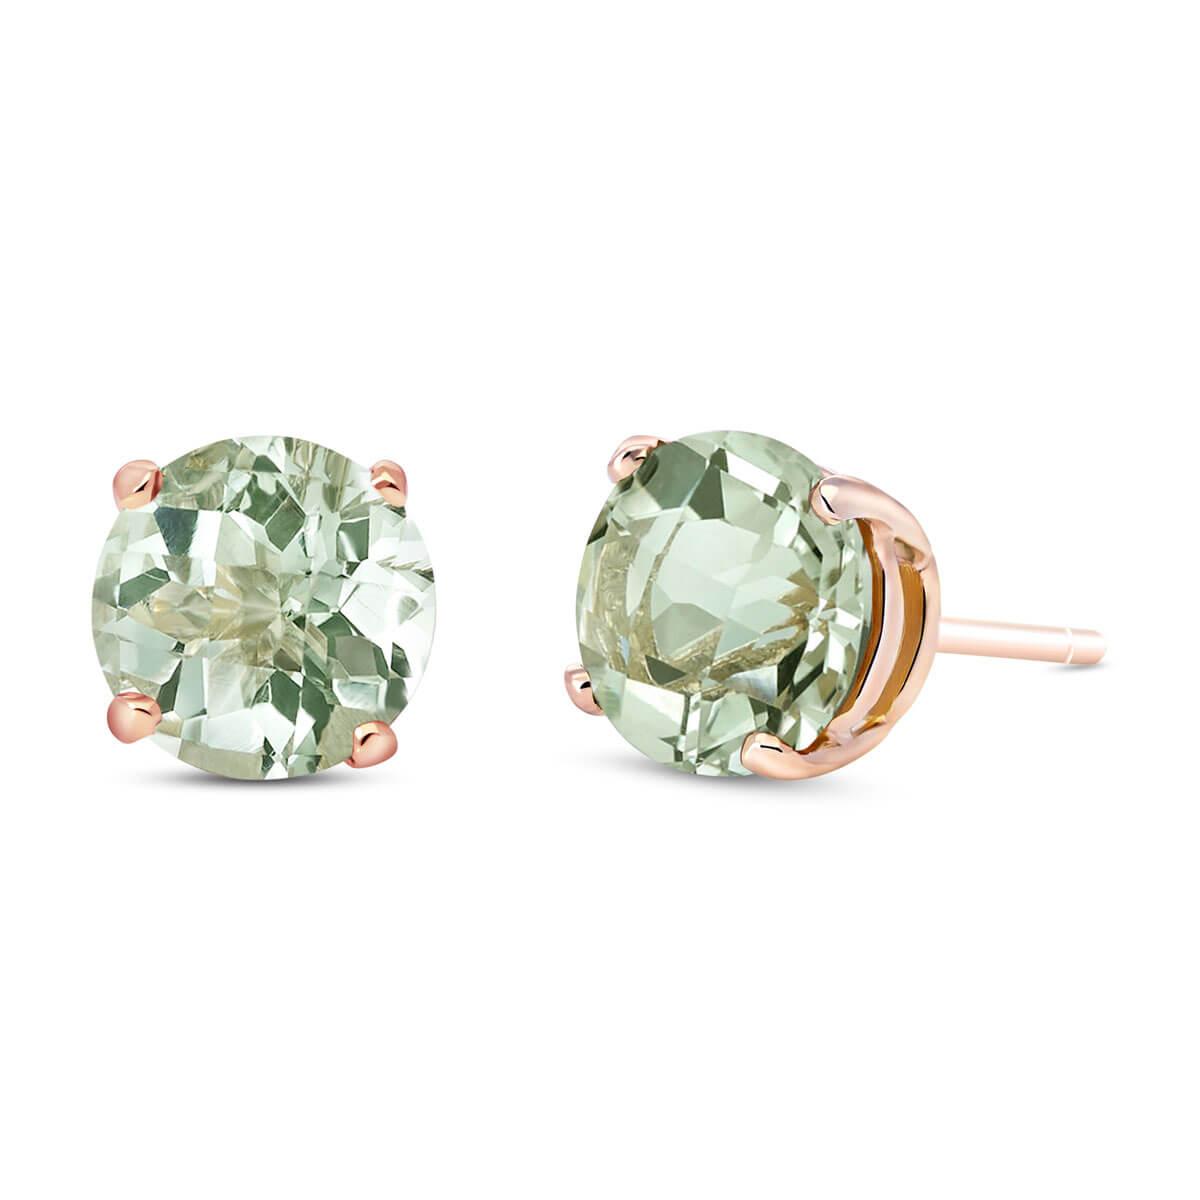 Green Amethyst Stud Earrings 3.1 ctw in 9ct Rose Gold